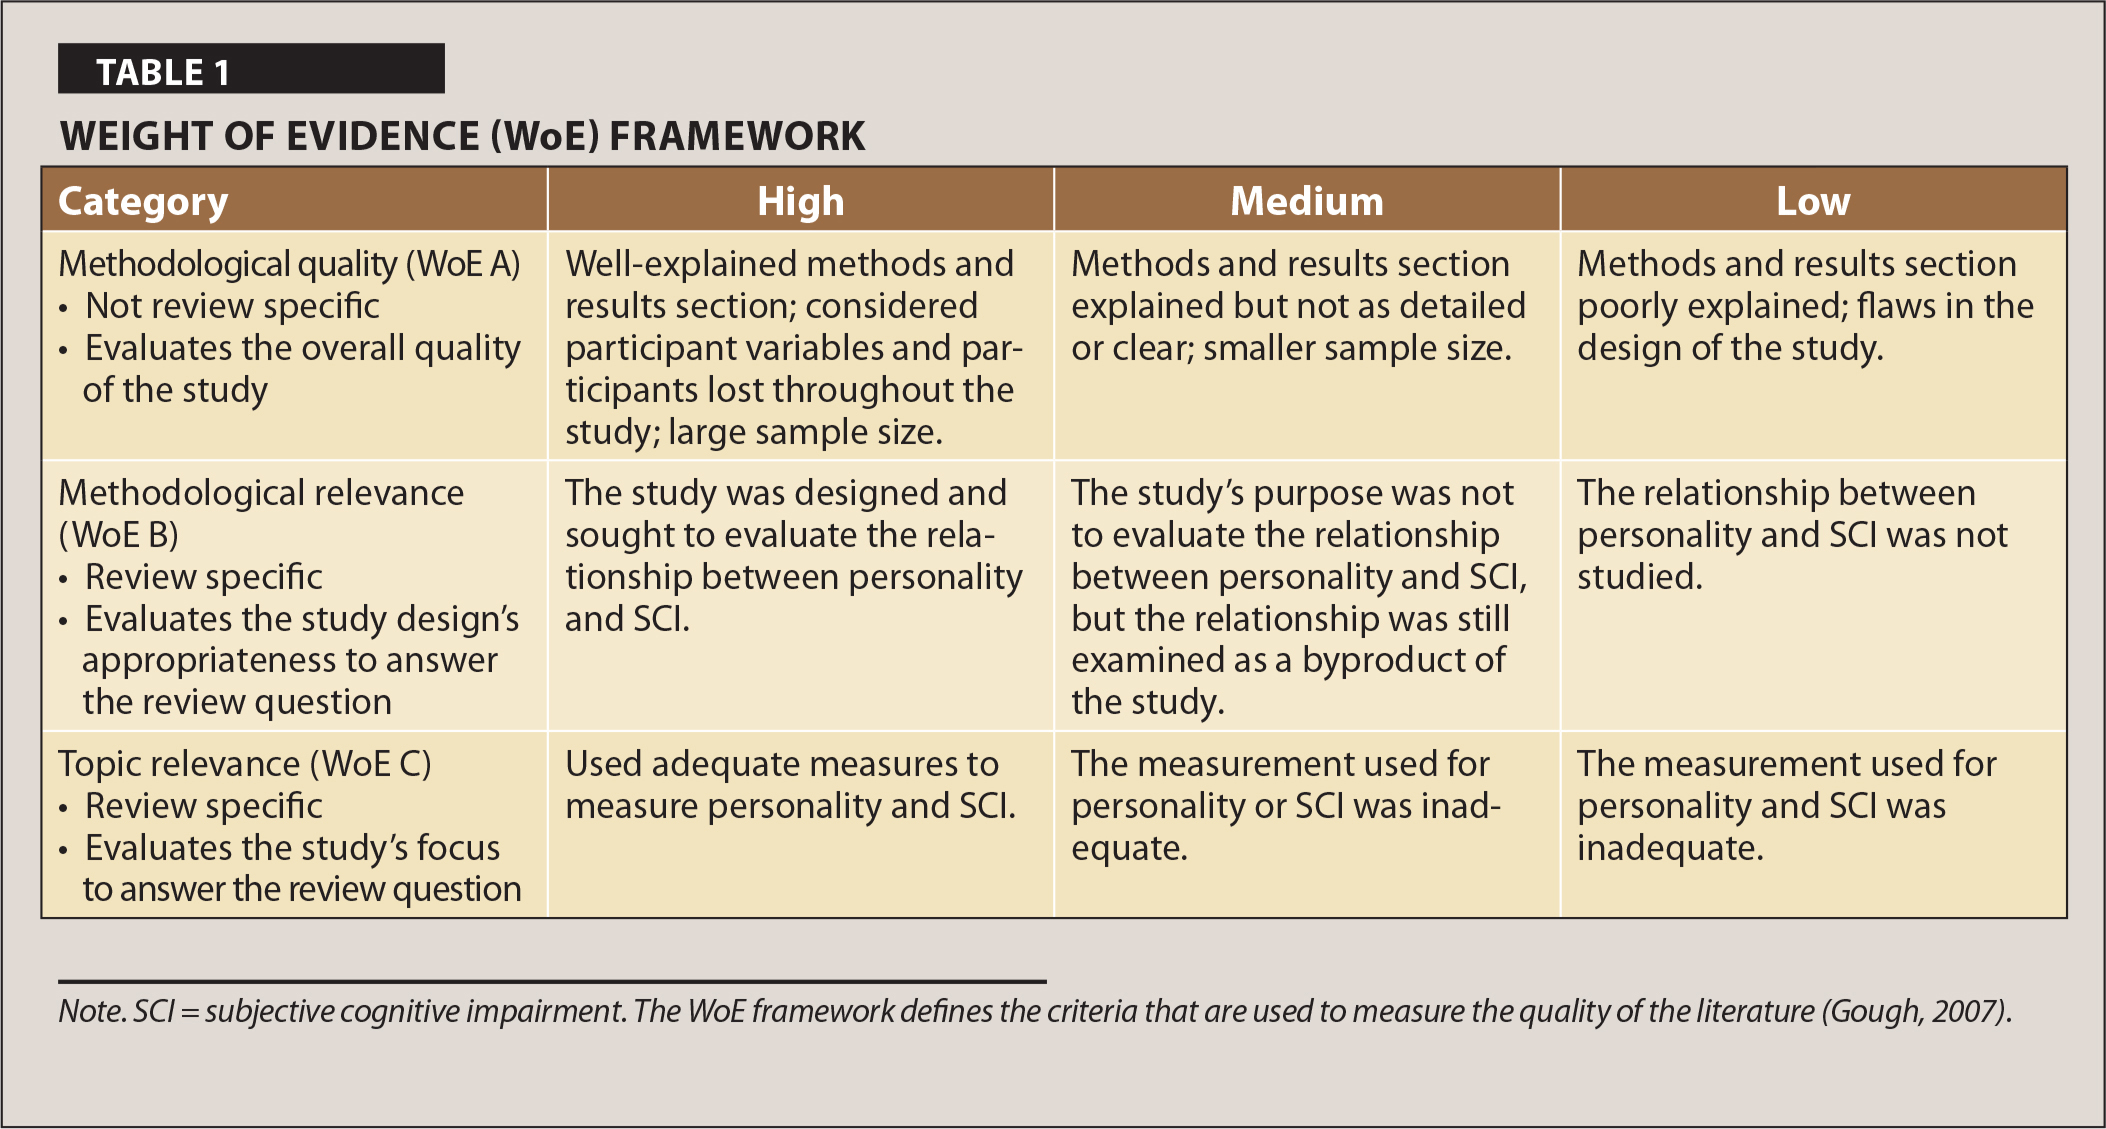 Weight of Evidence (WoE) Framework